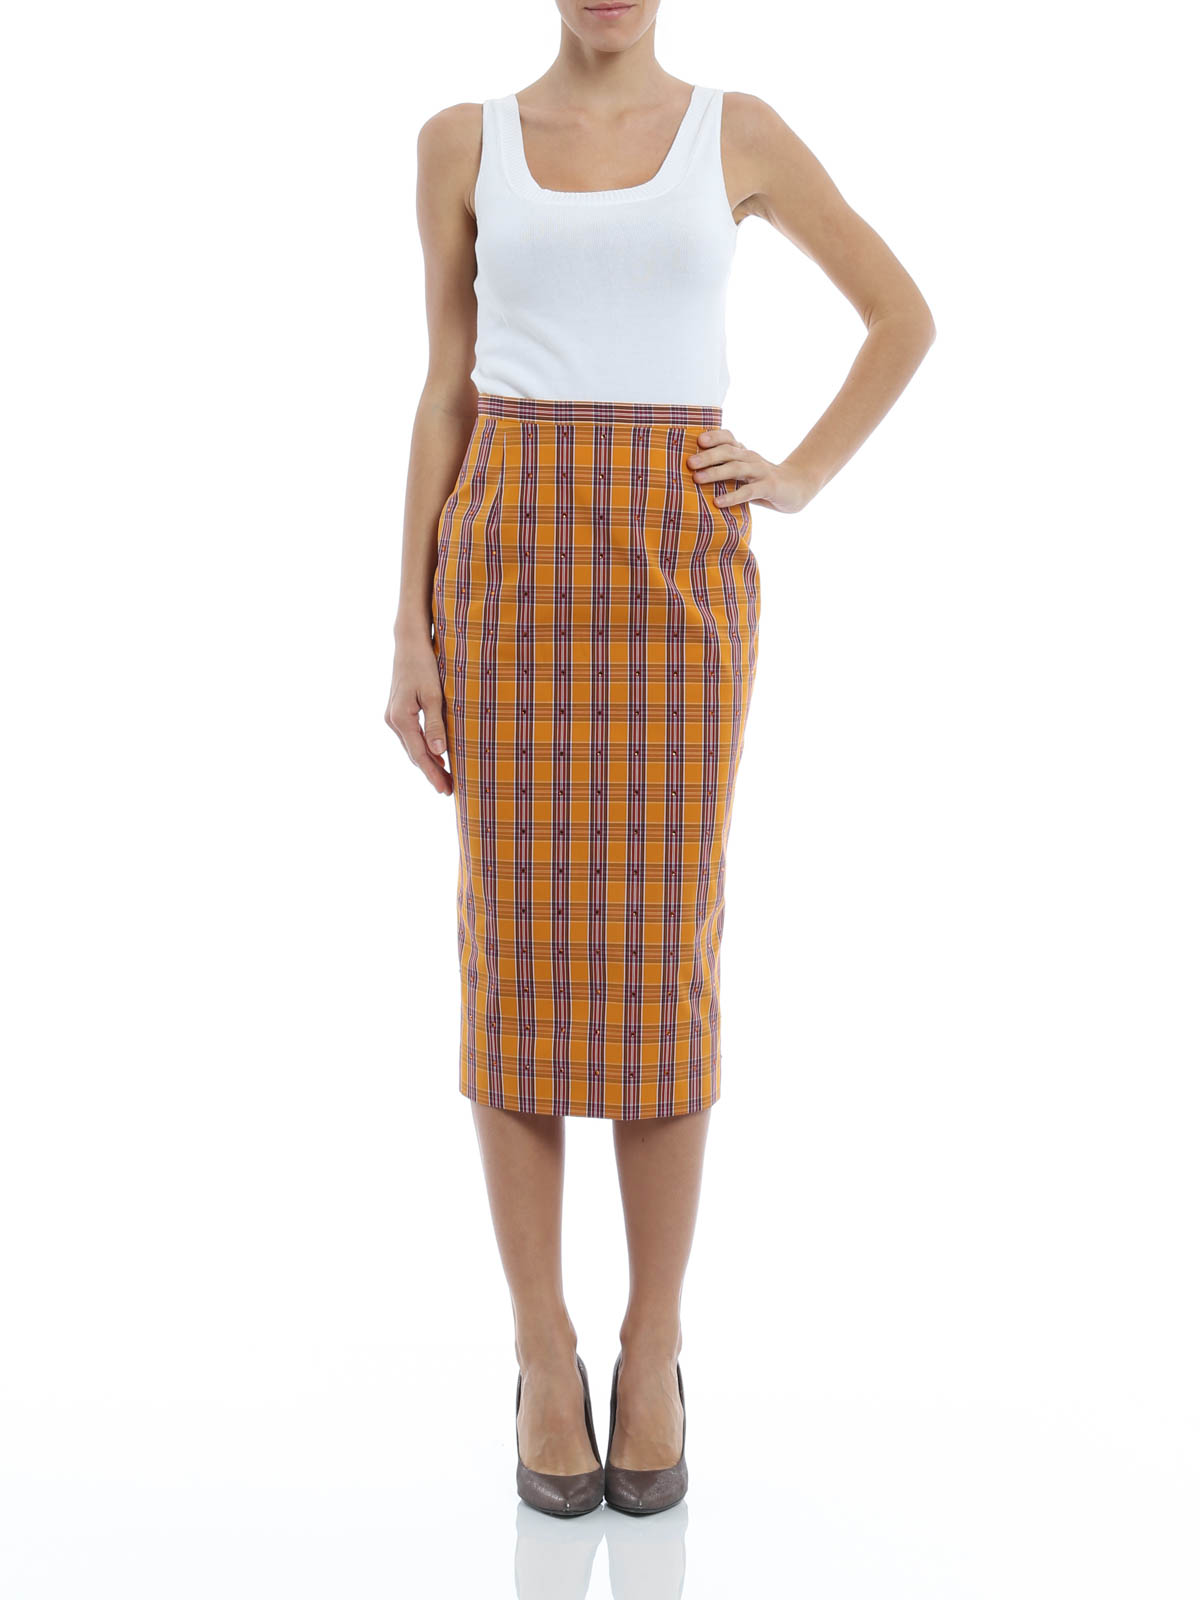 You searched for: tartan pencil skirt! Etsy is the home to thousands of handmade, vintage, and one-of-a-kind products and gifts related to your search. No matter what you're looking for or where you are in the world, our global marketplace of sellers can help you find unique and affordable options. Let's get started!